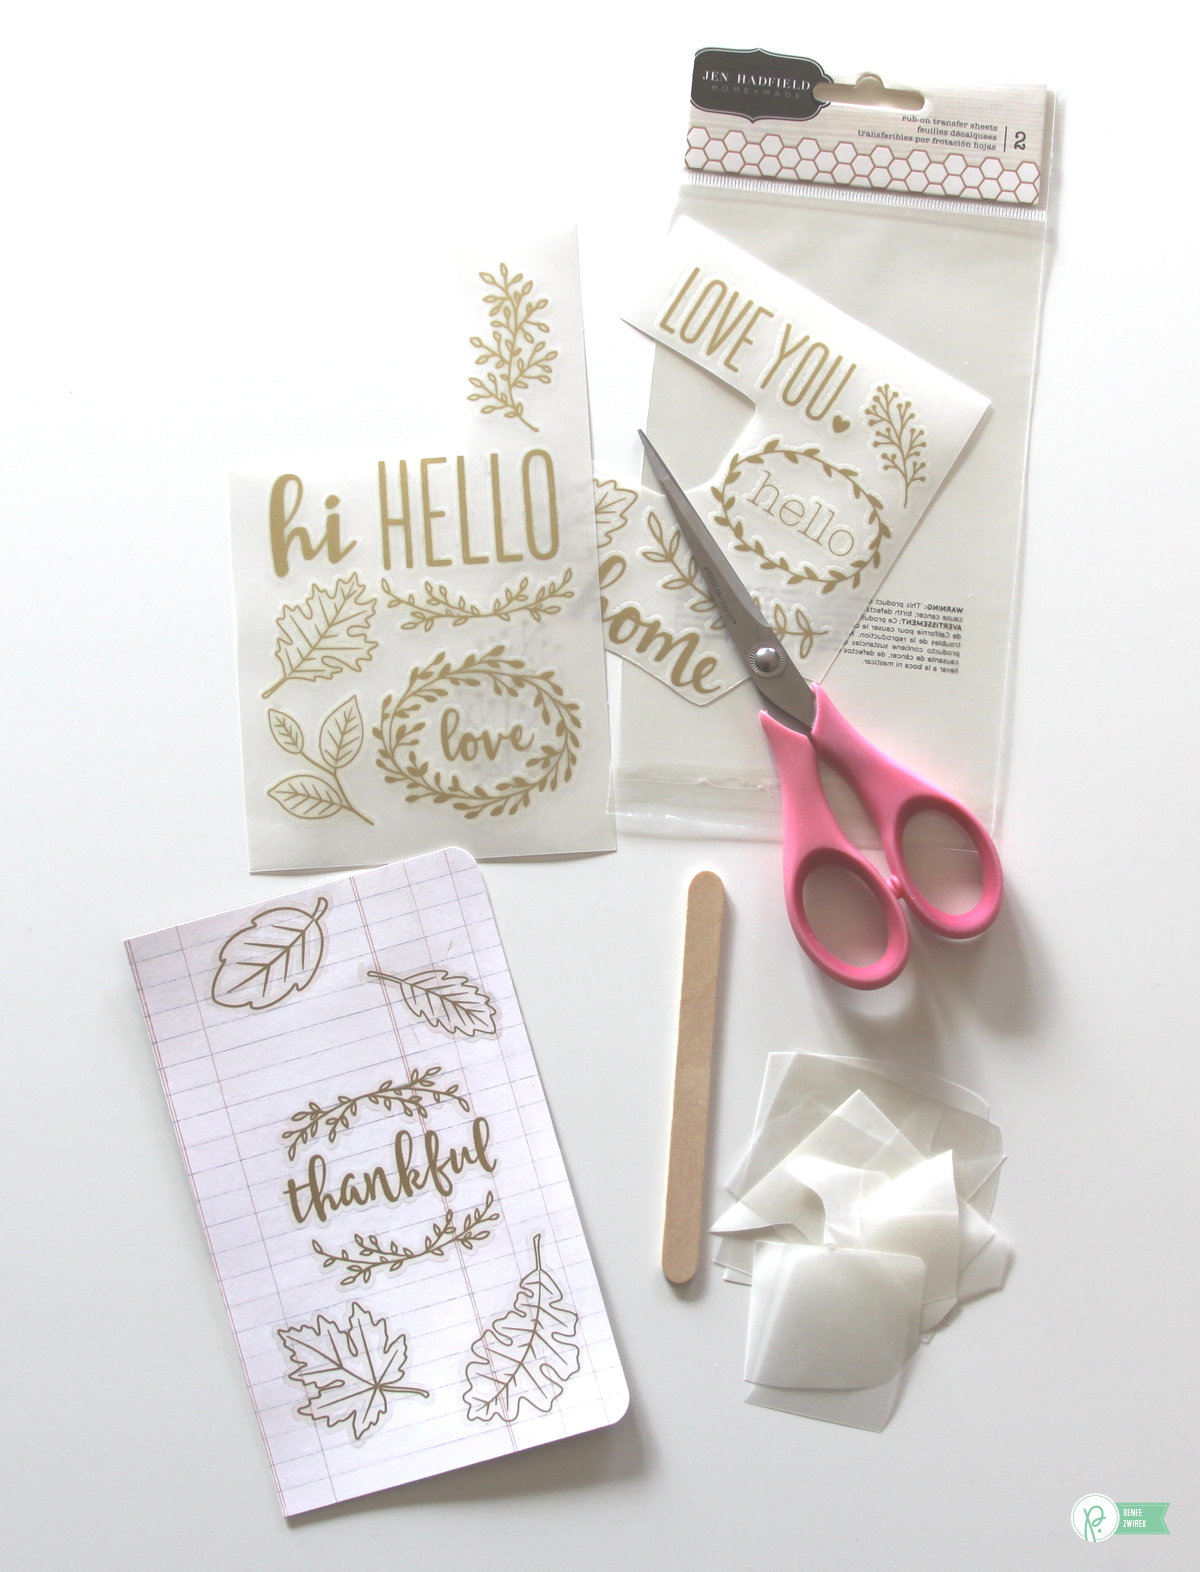 Near or far...send out these Thankful cards to your family and friends this Thanksgiving holiday by @reneezwirek using the #pbwarmandcozy collection by @pebblesinc and @Tatertots and Jello .com